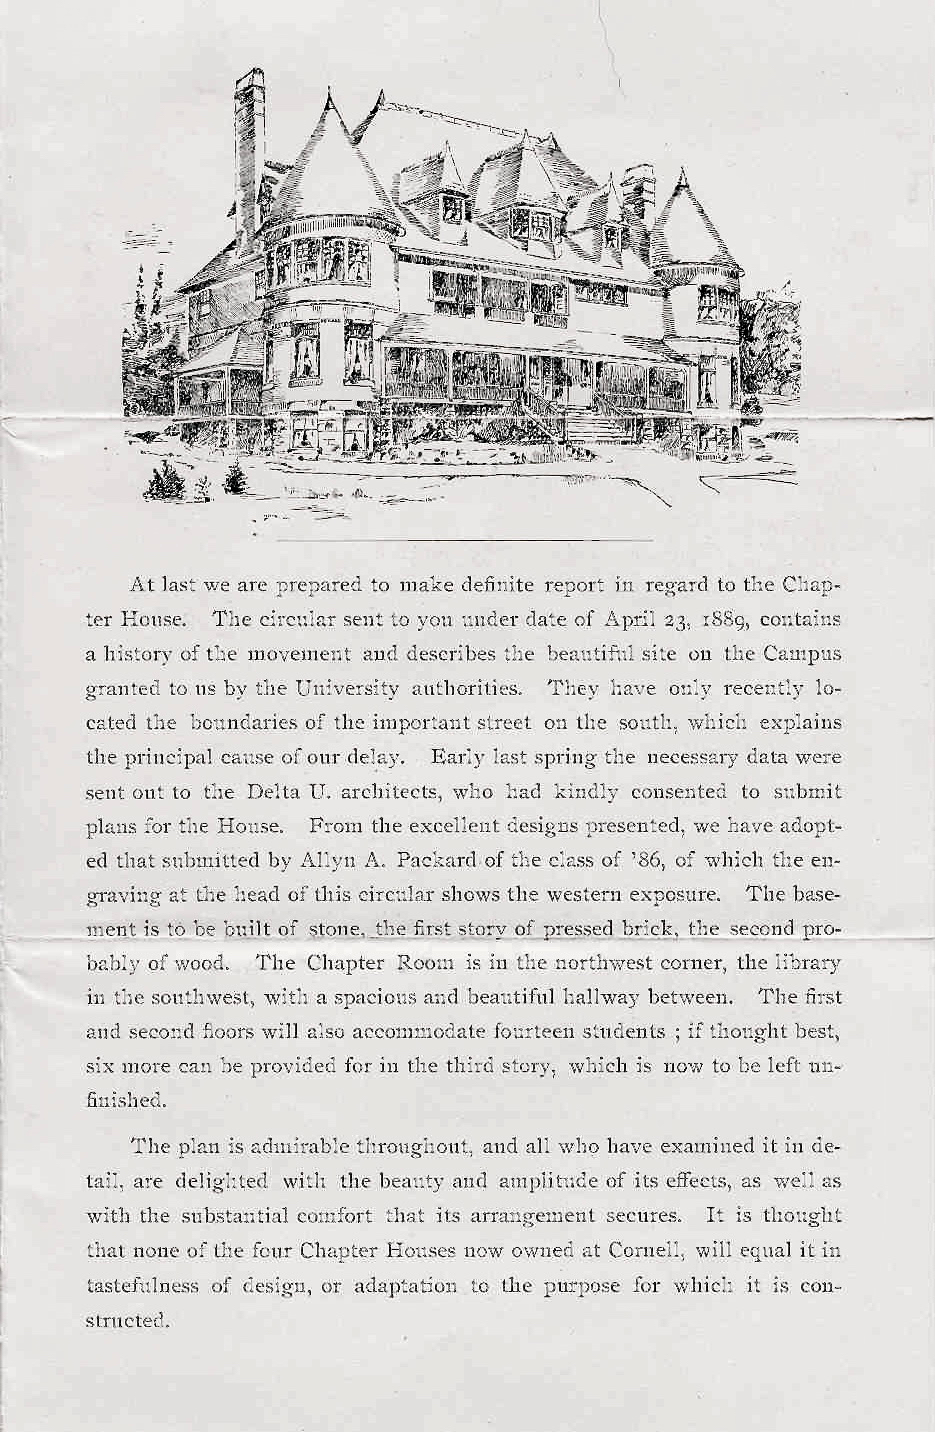 Fundraising Letter for First House | 1889